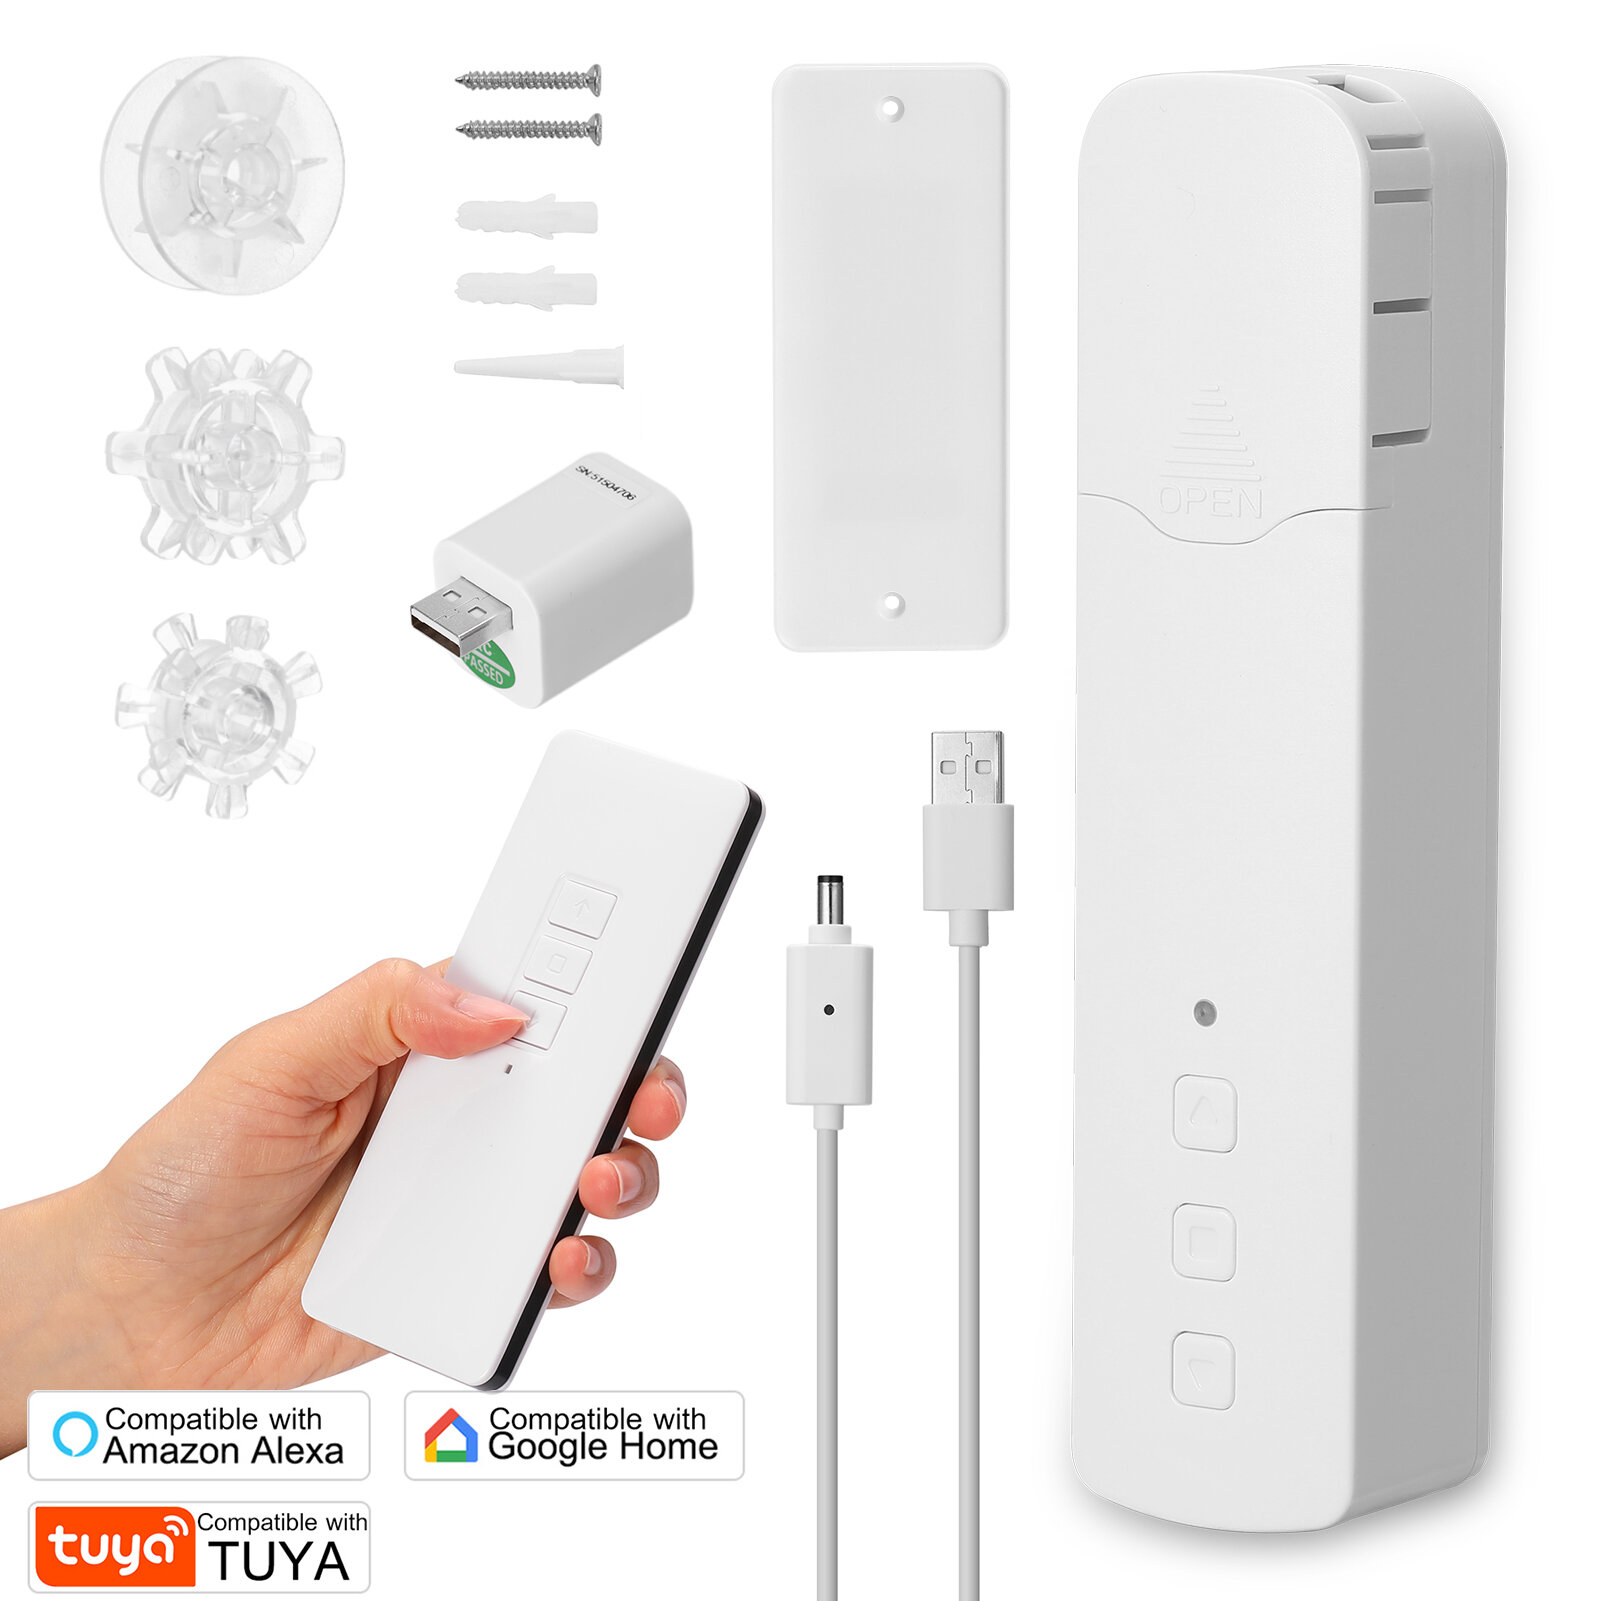 Tuya Wifi Smart Bead Curtain Motor Electric Roller Blind Manual Control Voice Control Work with Tuya Smart Life APP Support Google Home Alexa - with remote control Lithium battery rechargeable